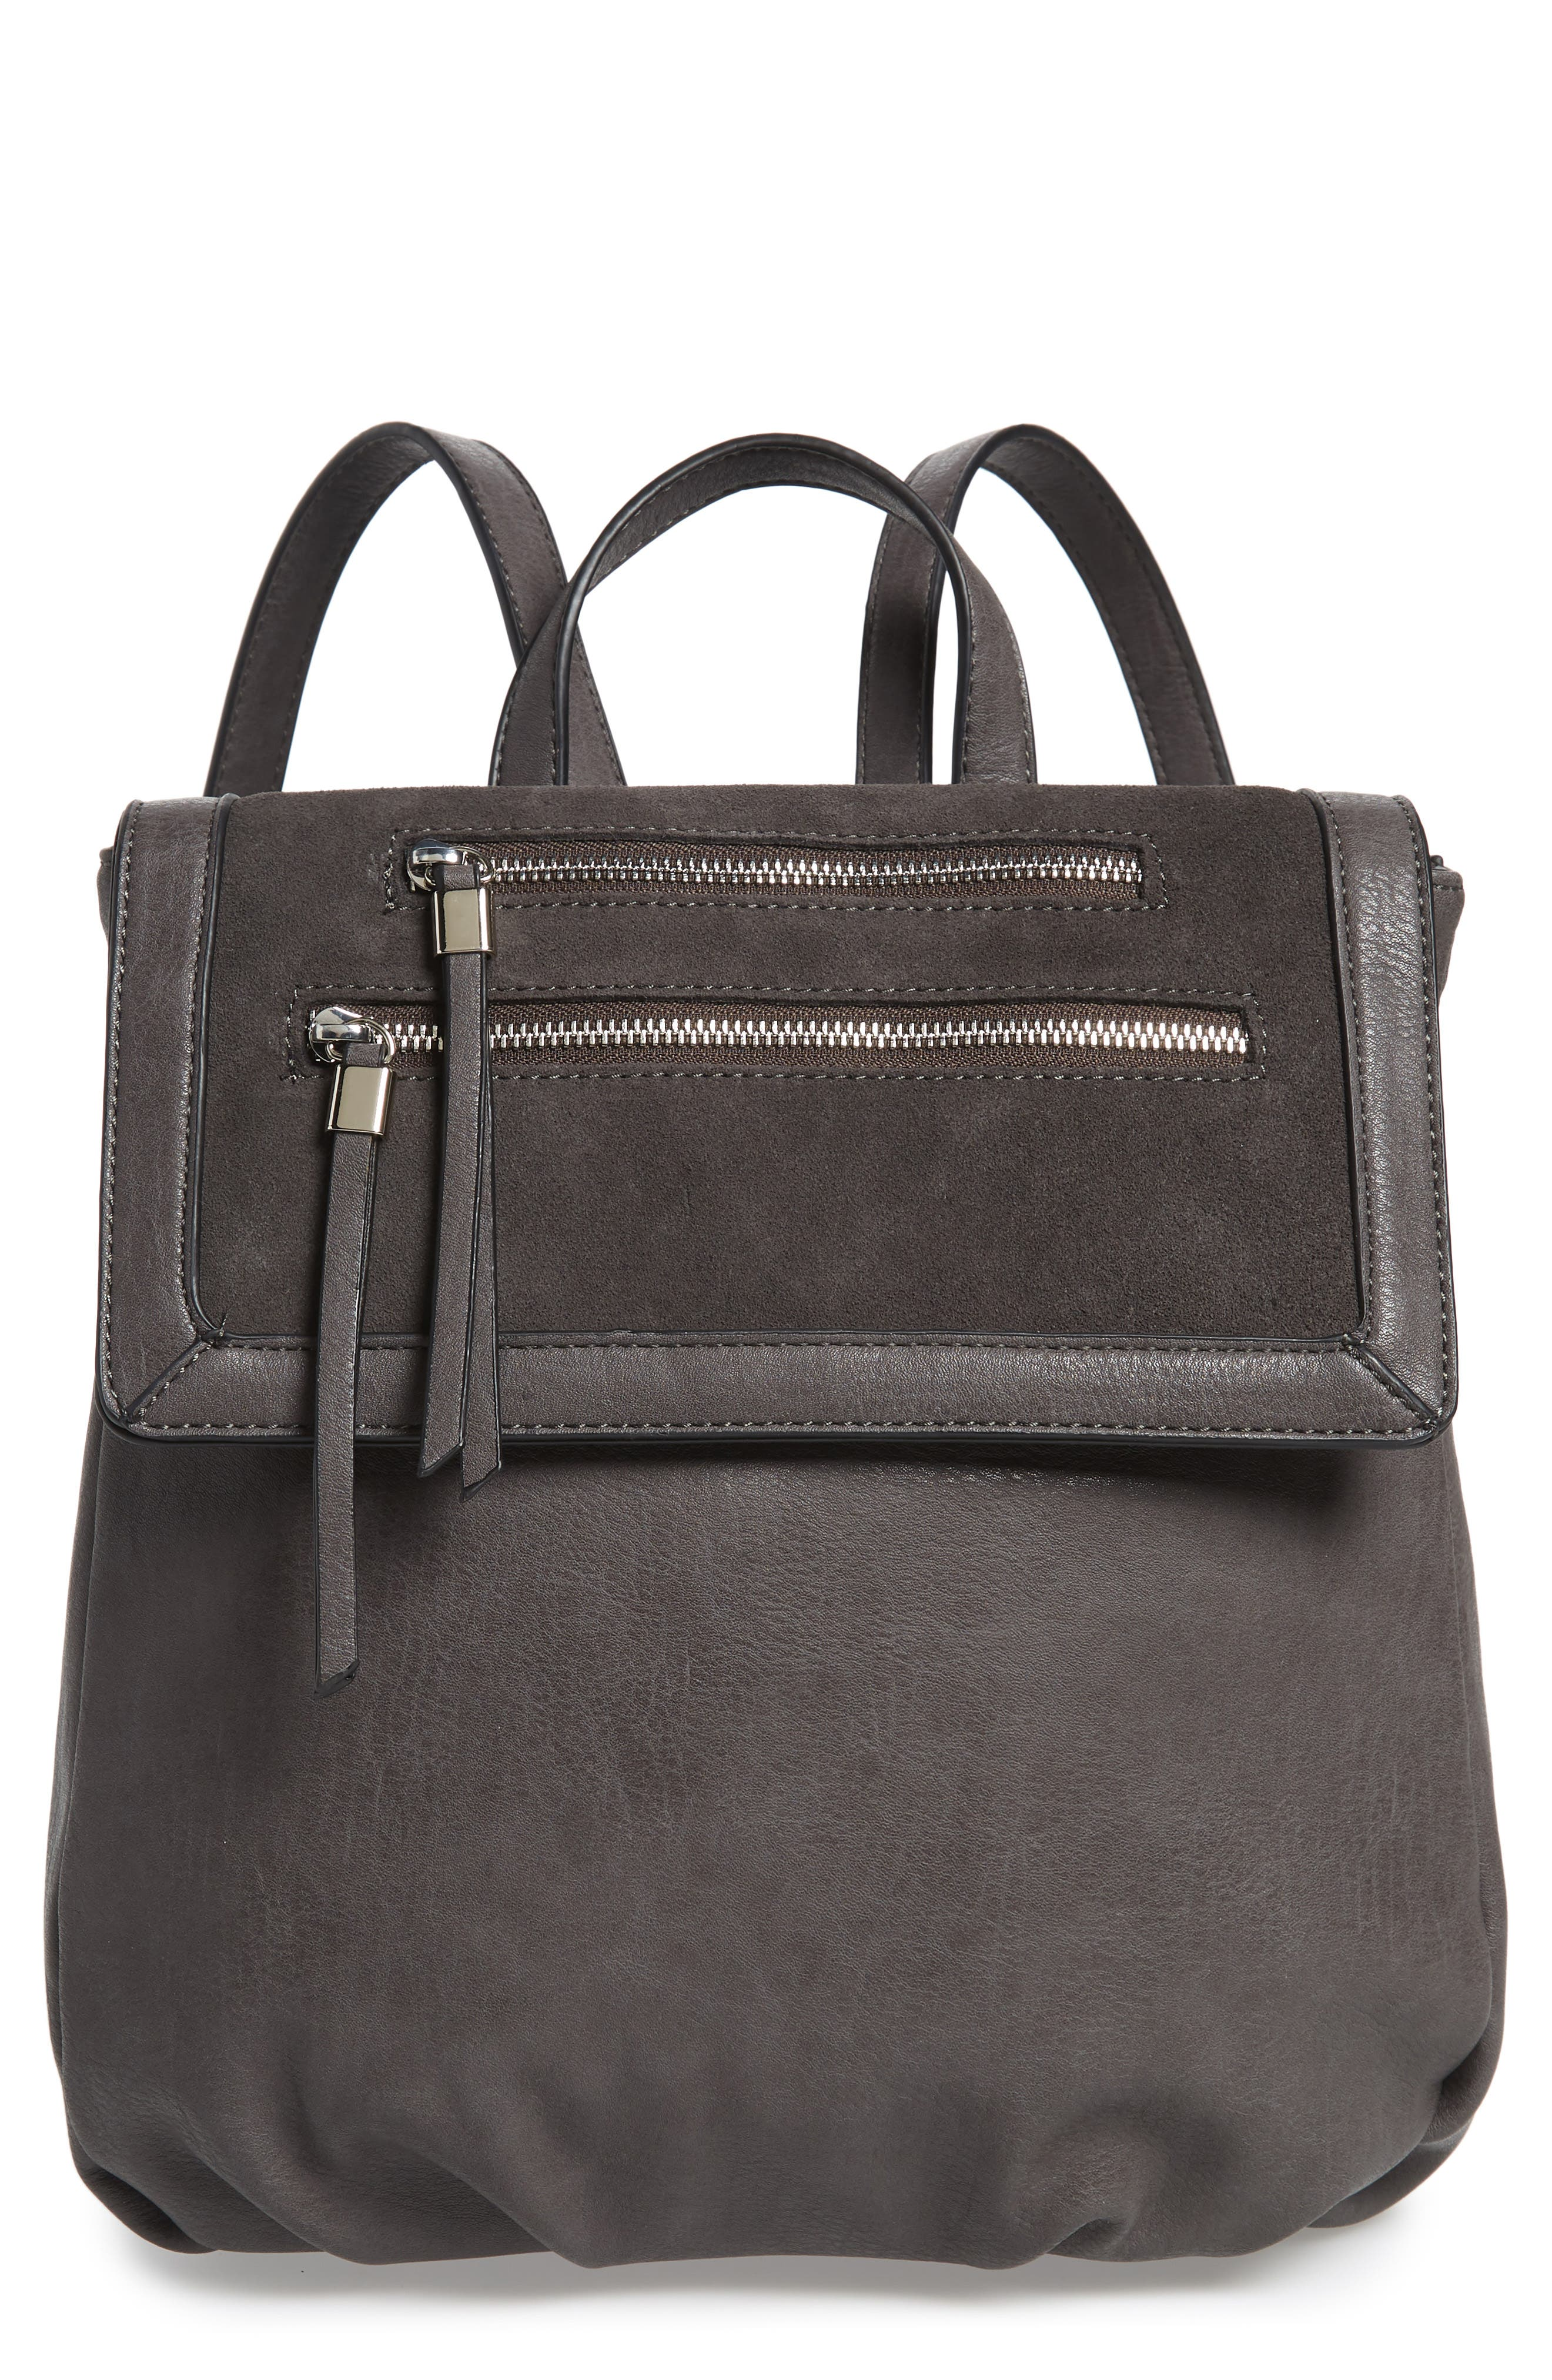 Chele Backpack,                         Main,                         color, DARK GREY